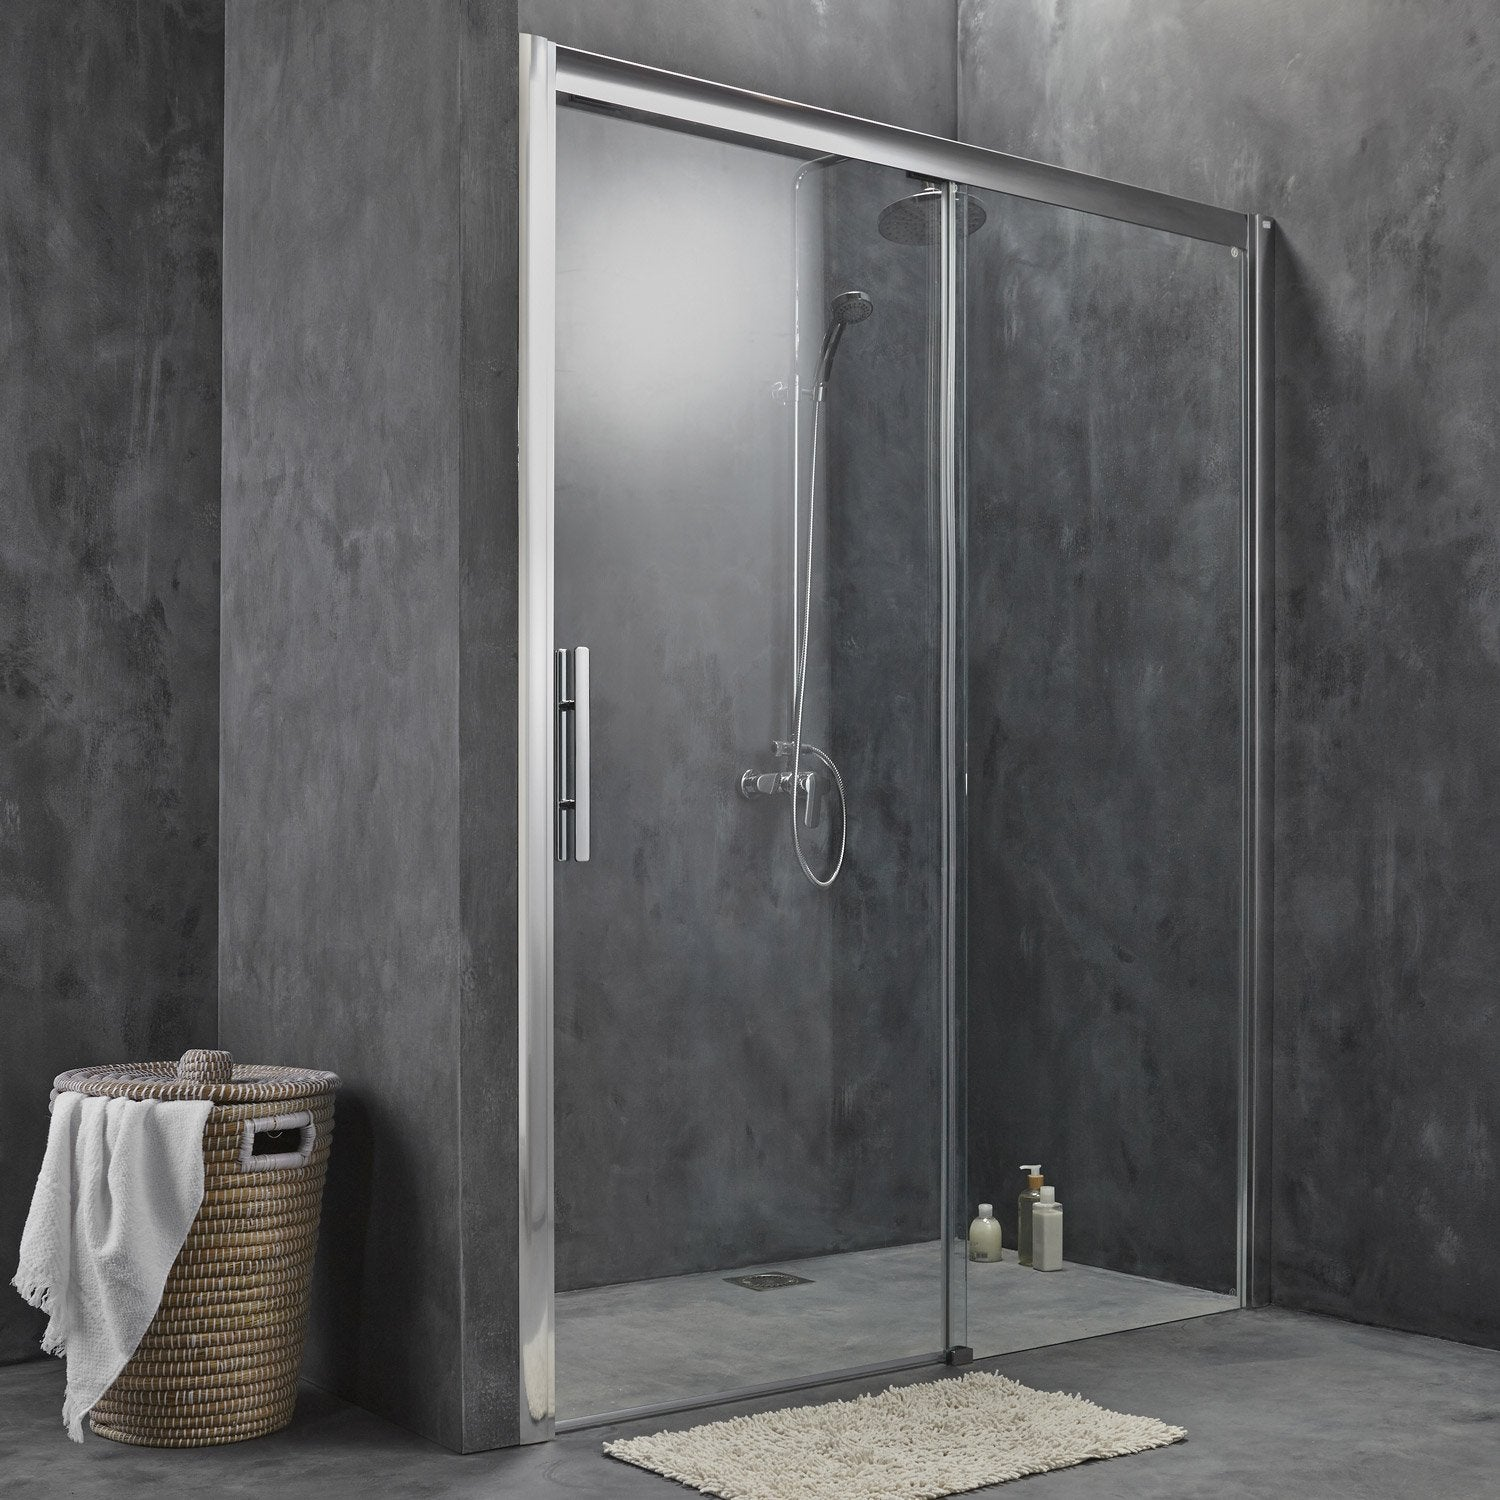 Porte de douche coulissante 170 cm transparent adena for Porte douche 180